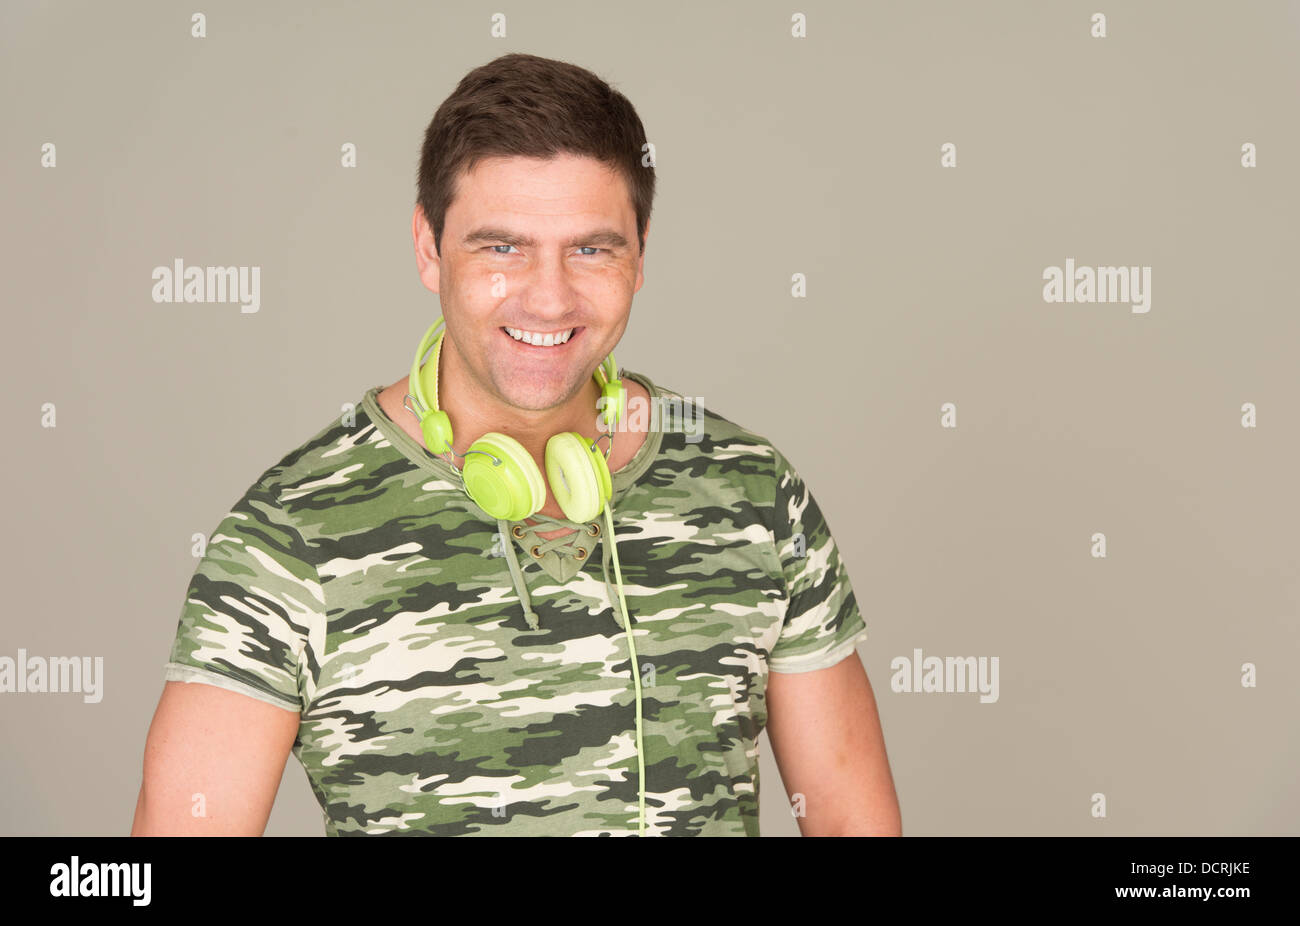 Man with camouflage t-shirt and green headphones smiling at camera - Stock Image